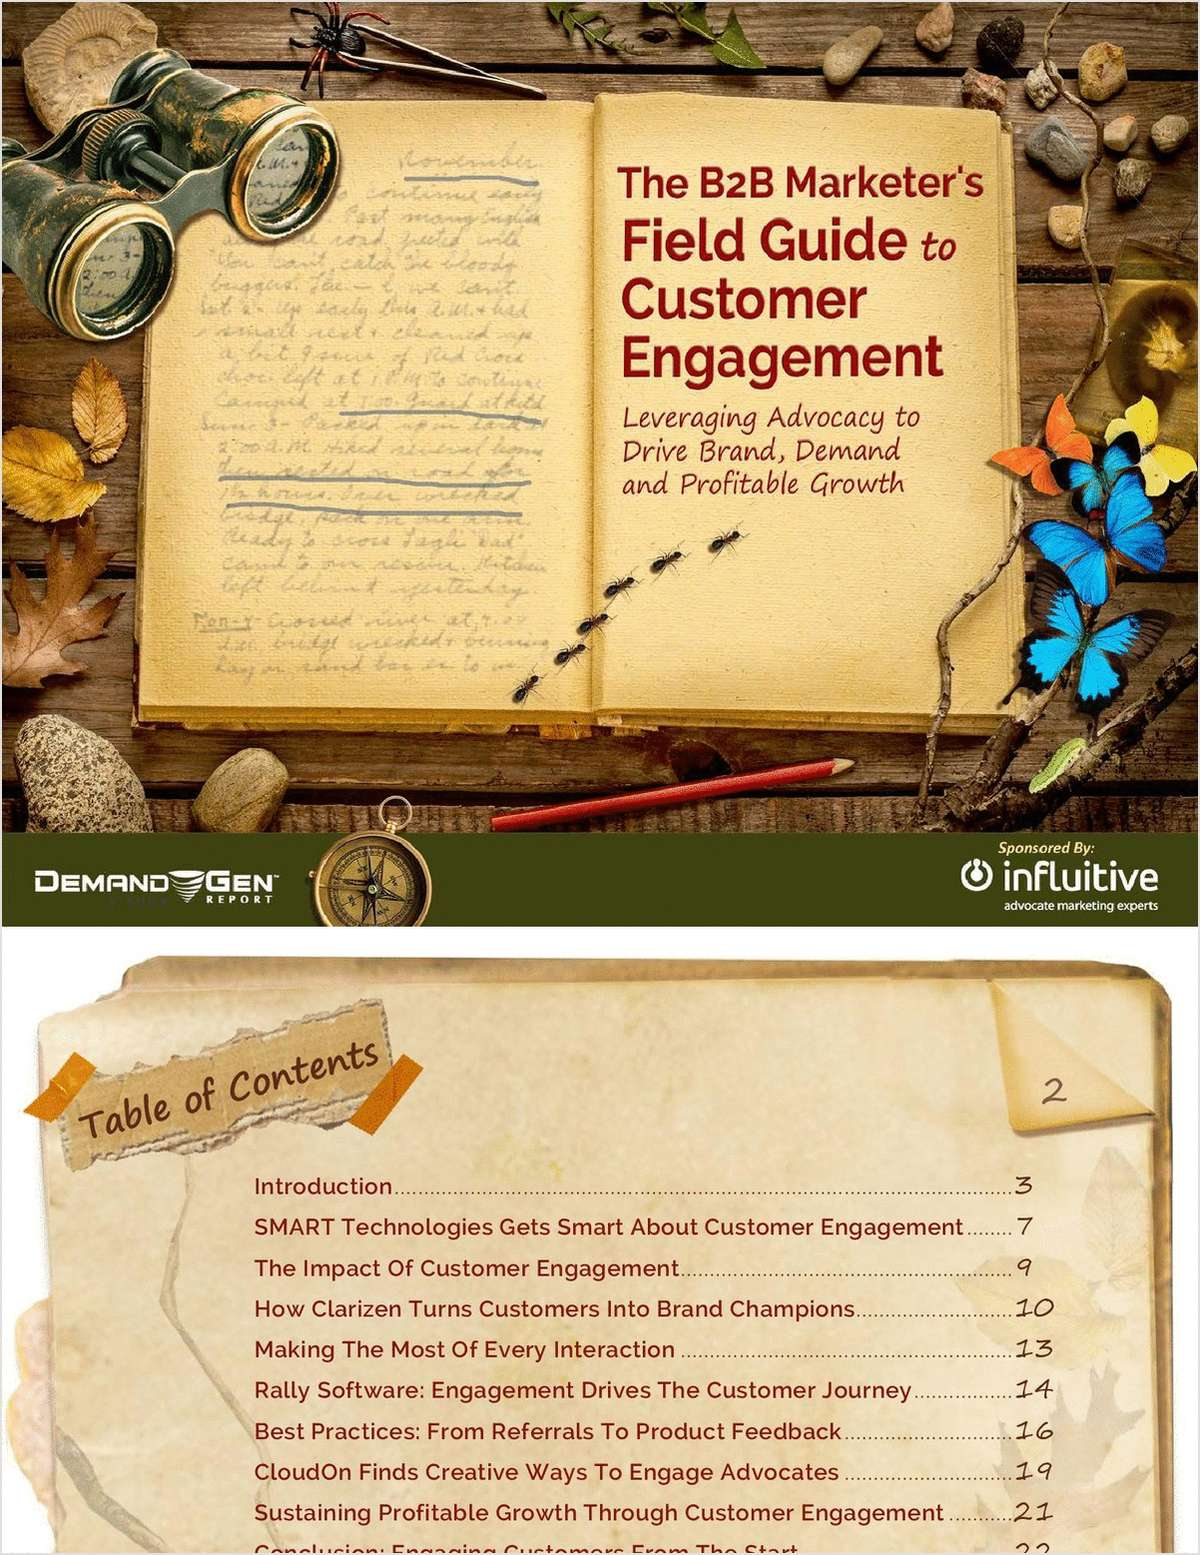 The B2B Marketer's Field Guide To Customer Engagement